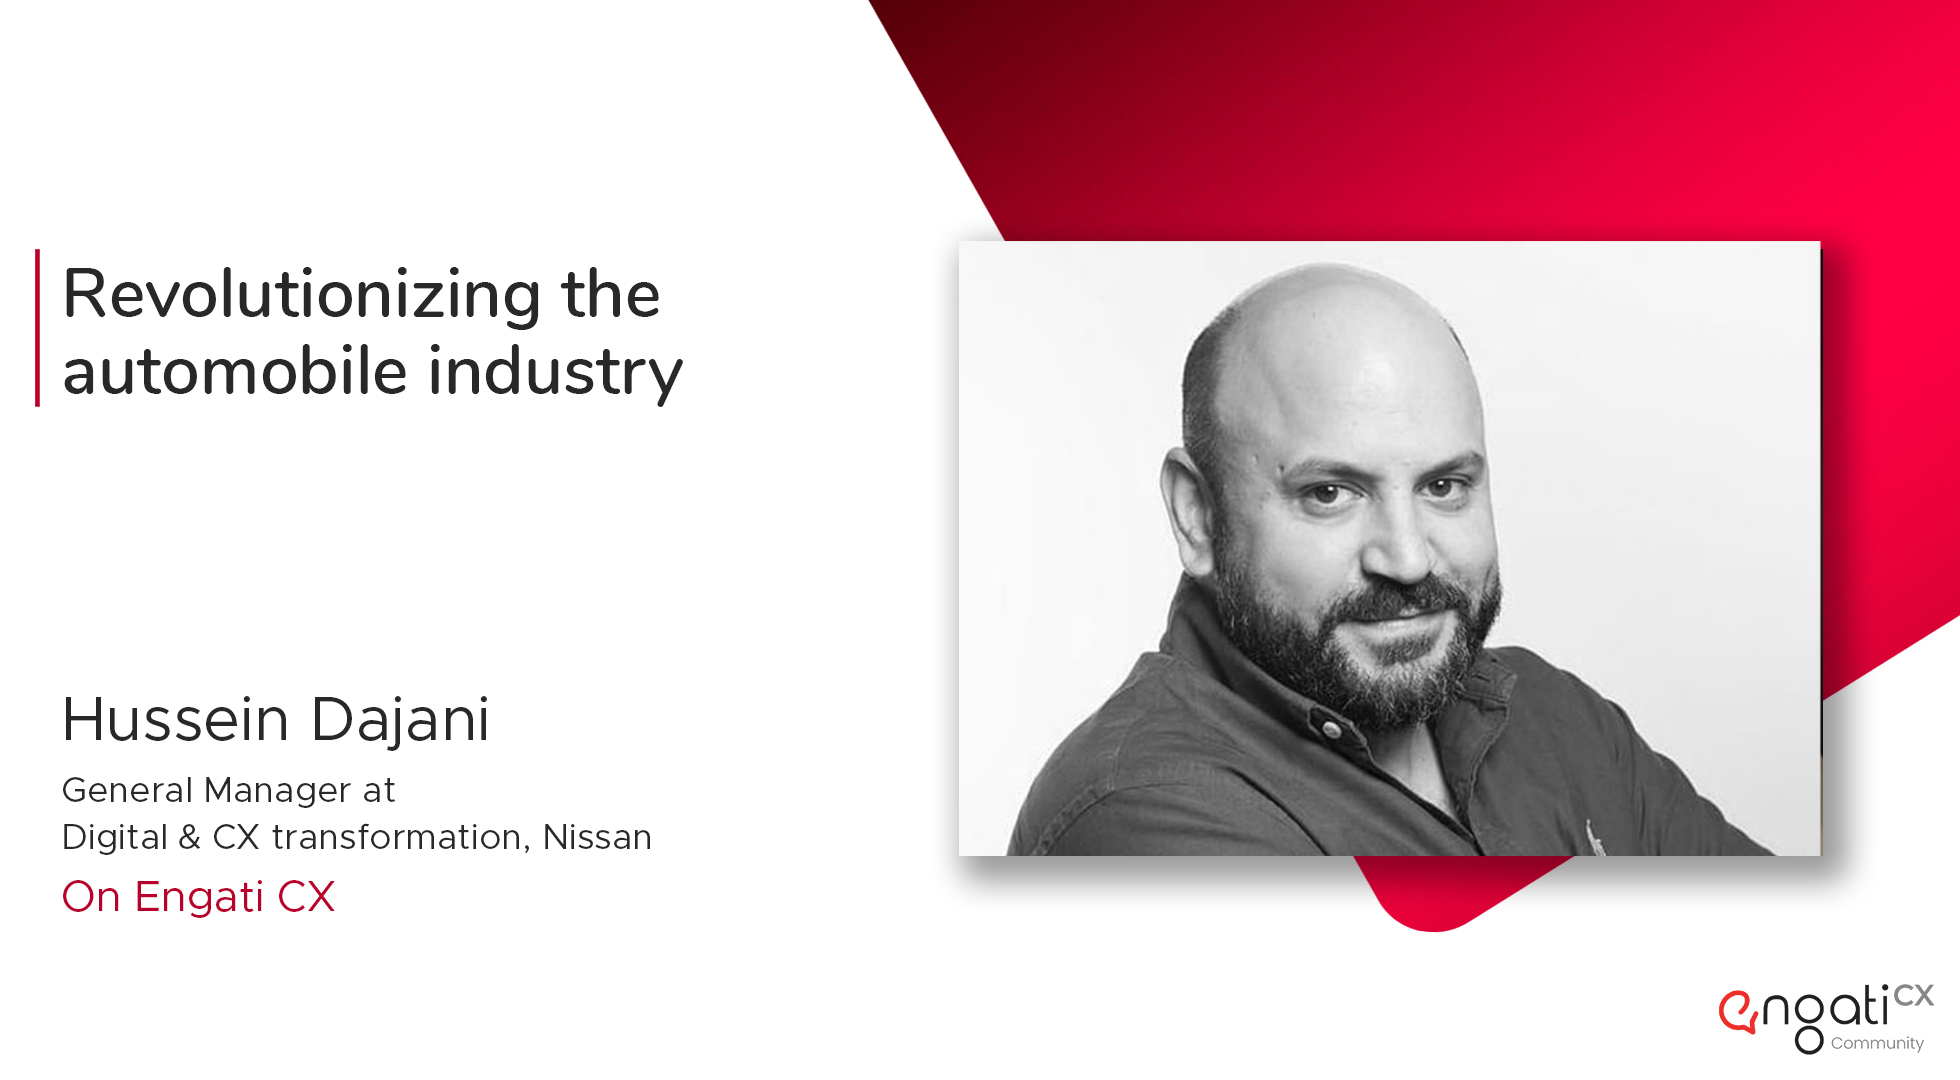 Revolutionizing the automobile industry | Hussein Dajani | Engati CX